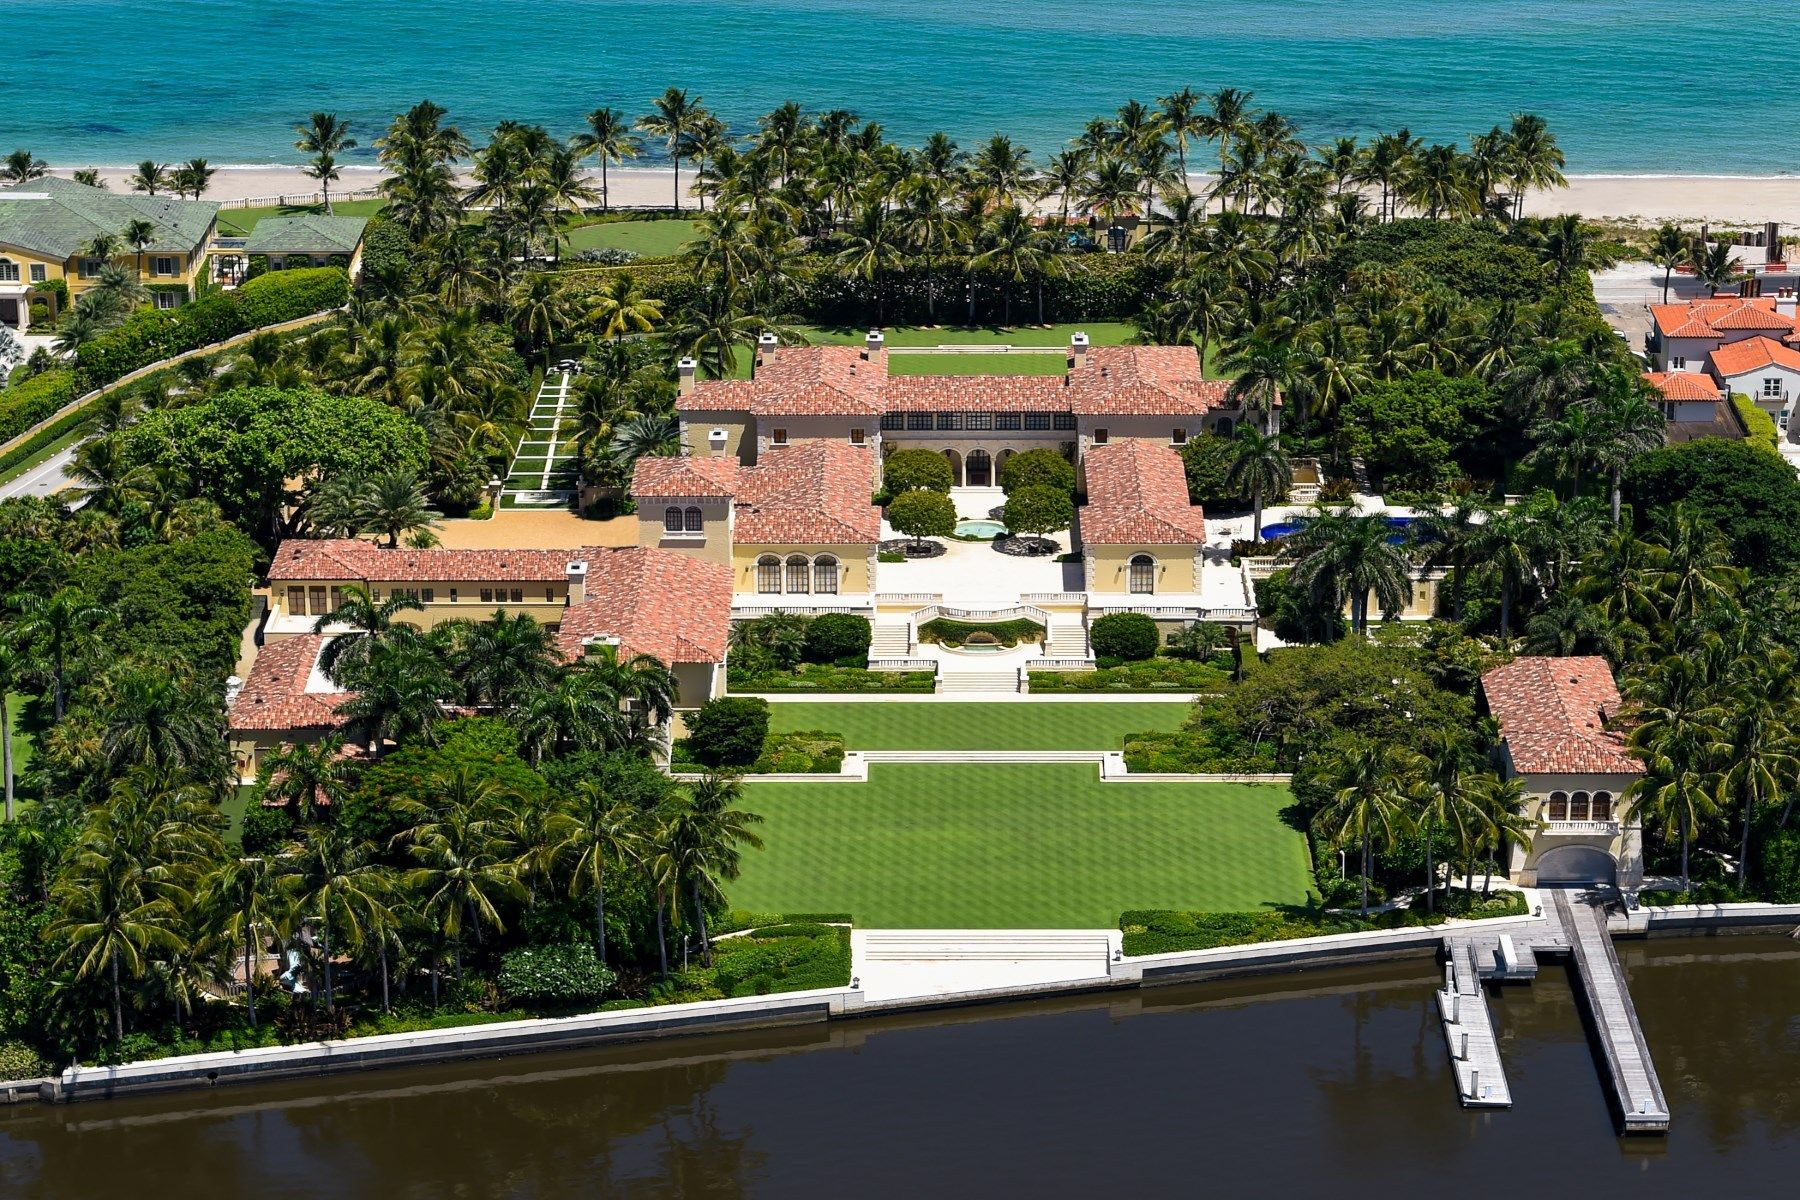 For $137 Million, II Palmetto Could be Your Dream Home | Palm beach ...